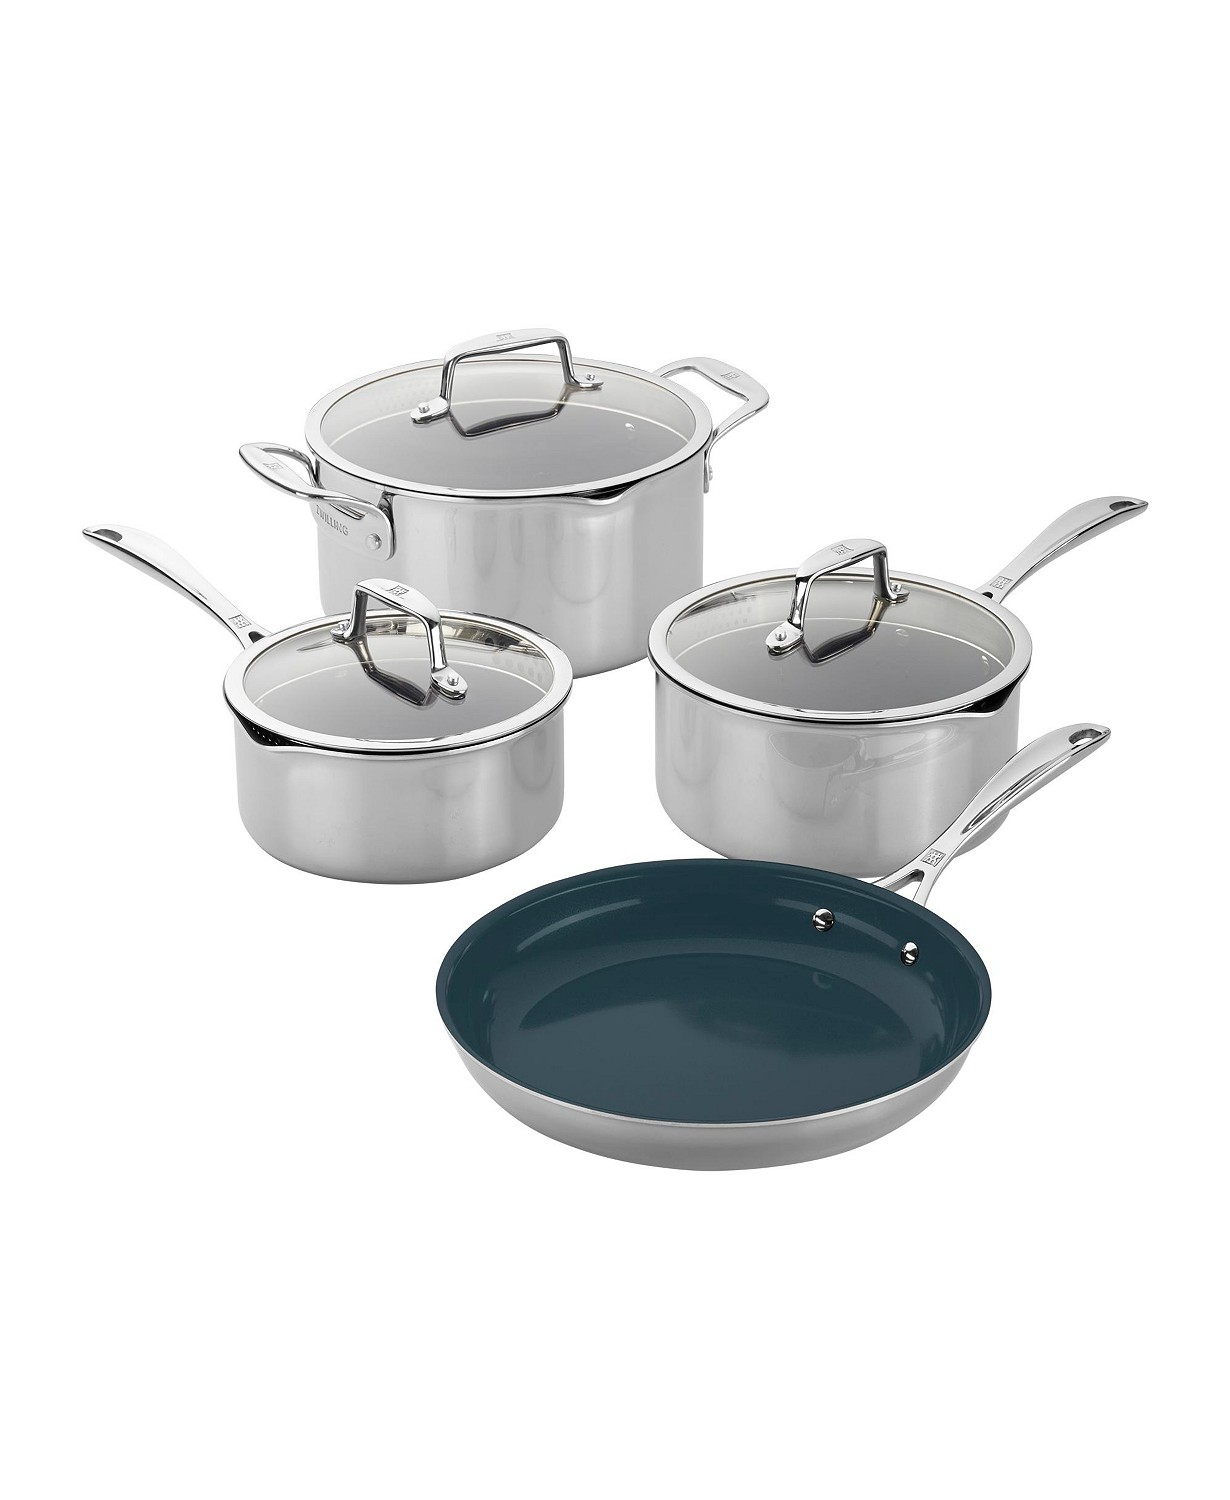 Zwilling Clad Cfx Cookware Set 7 Pc Set Or 10 Pc Set